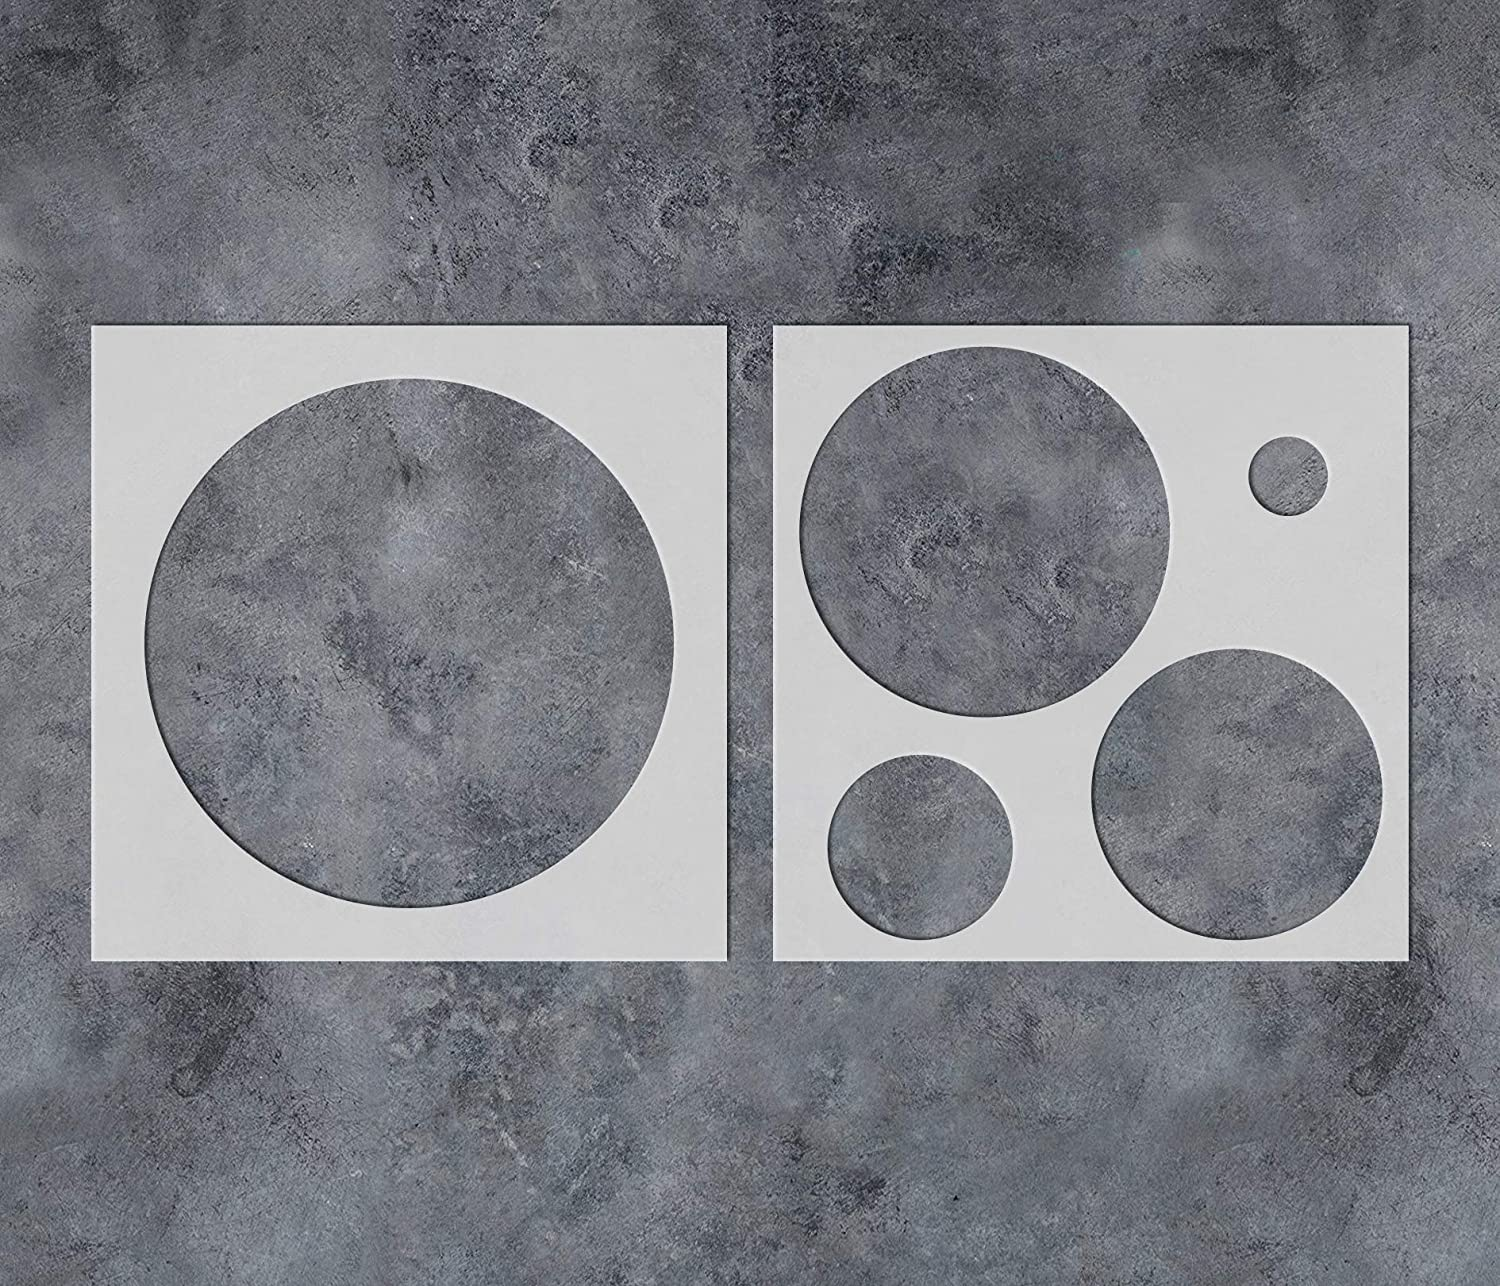 GSS Designs Circle Polka Dot Wall Stencil (2 Pack) - Reusable Plastic Stencils for Painting on Wall Wood Canvas Furniture (12x12In) - Use for Wall Art DIY Home Decor